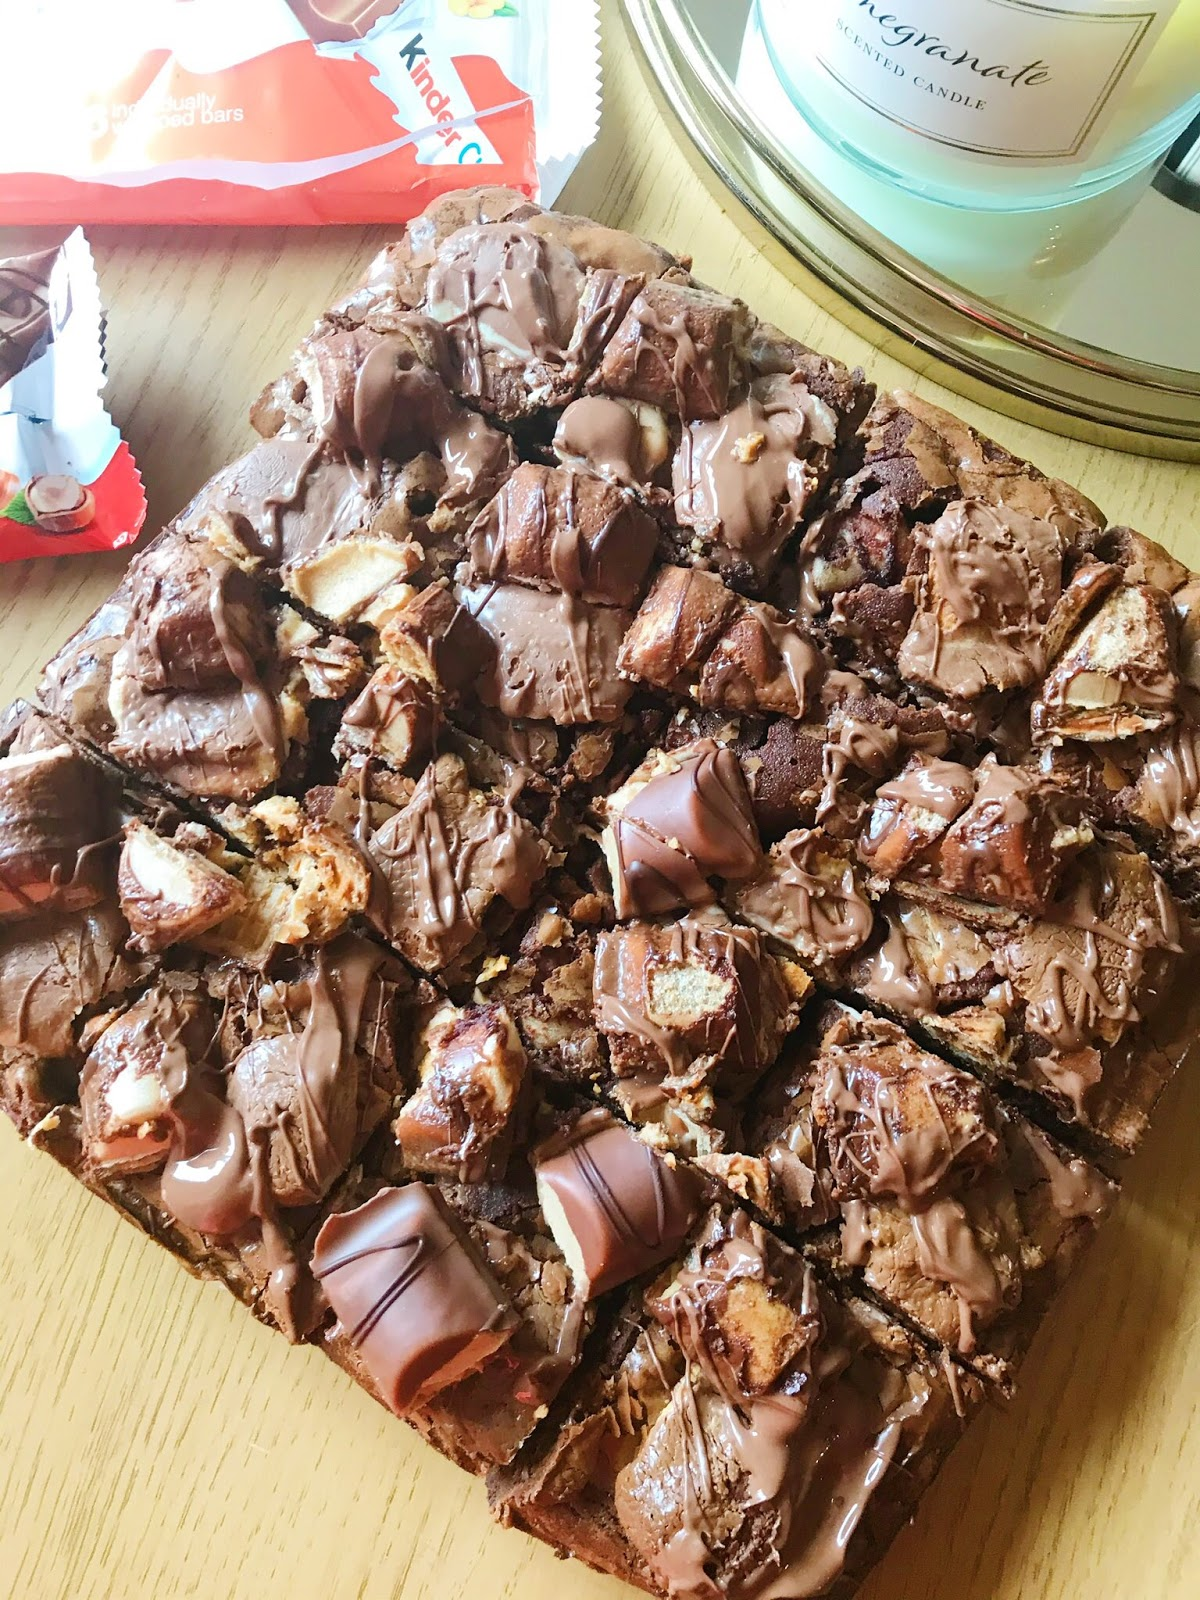 Kinder Buenos brownies on coffee table with Kinder bars next to it